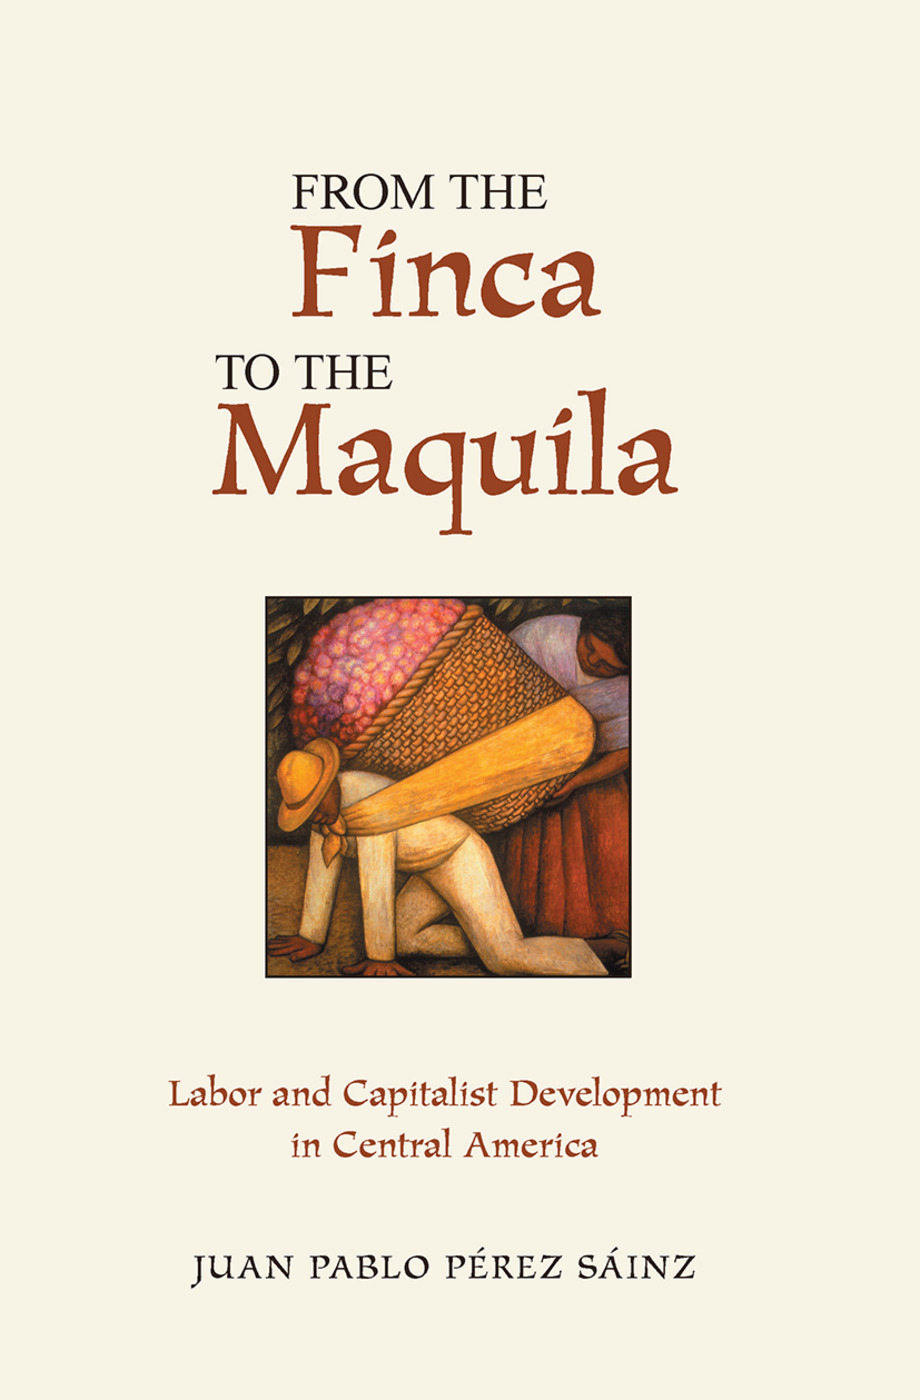 From The Finca To The Maquila: Labor And Capitalist Development In Central America book cover